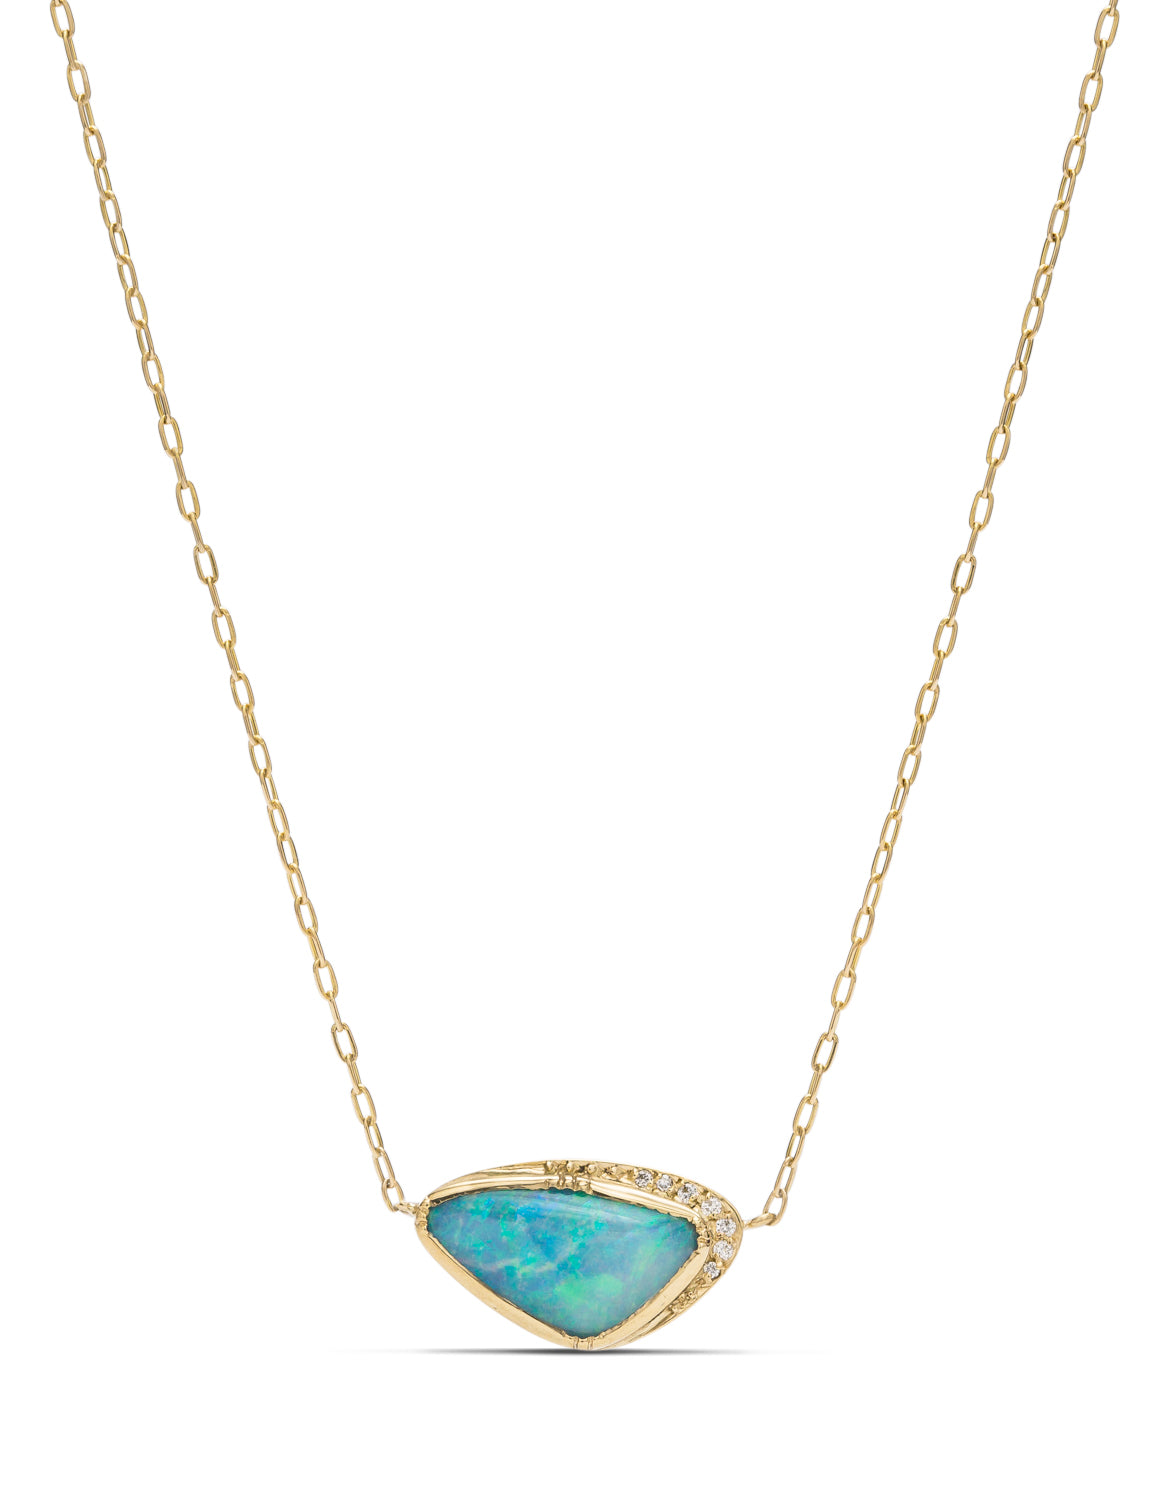 Boulder Opal and Diamond Pendant - Charles Koll Jewellers